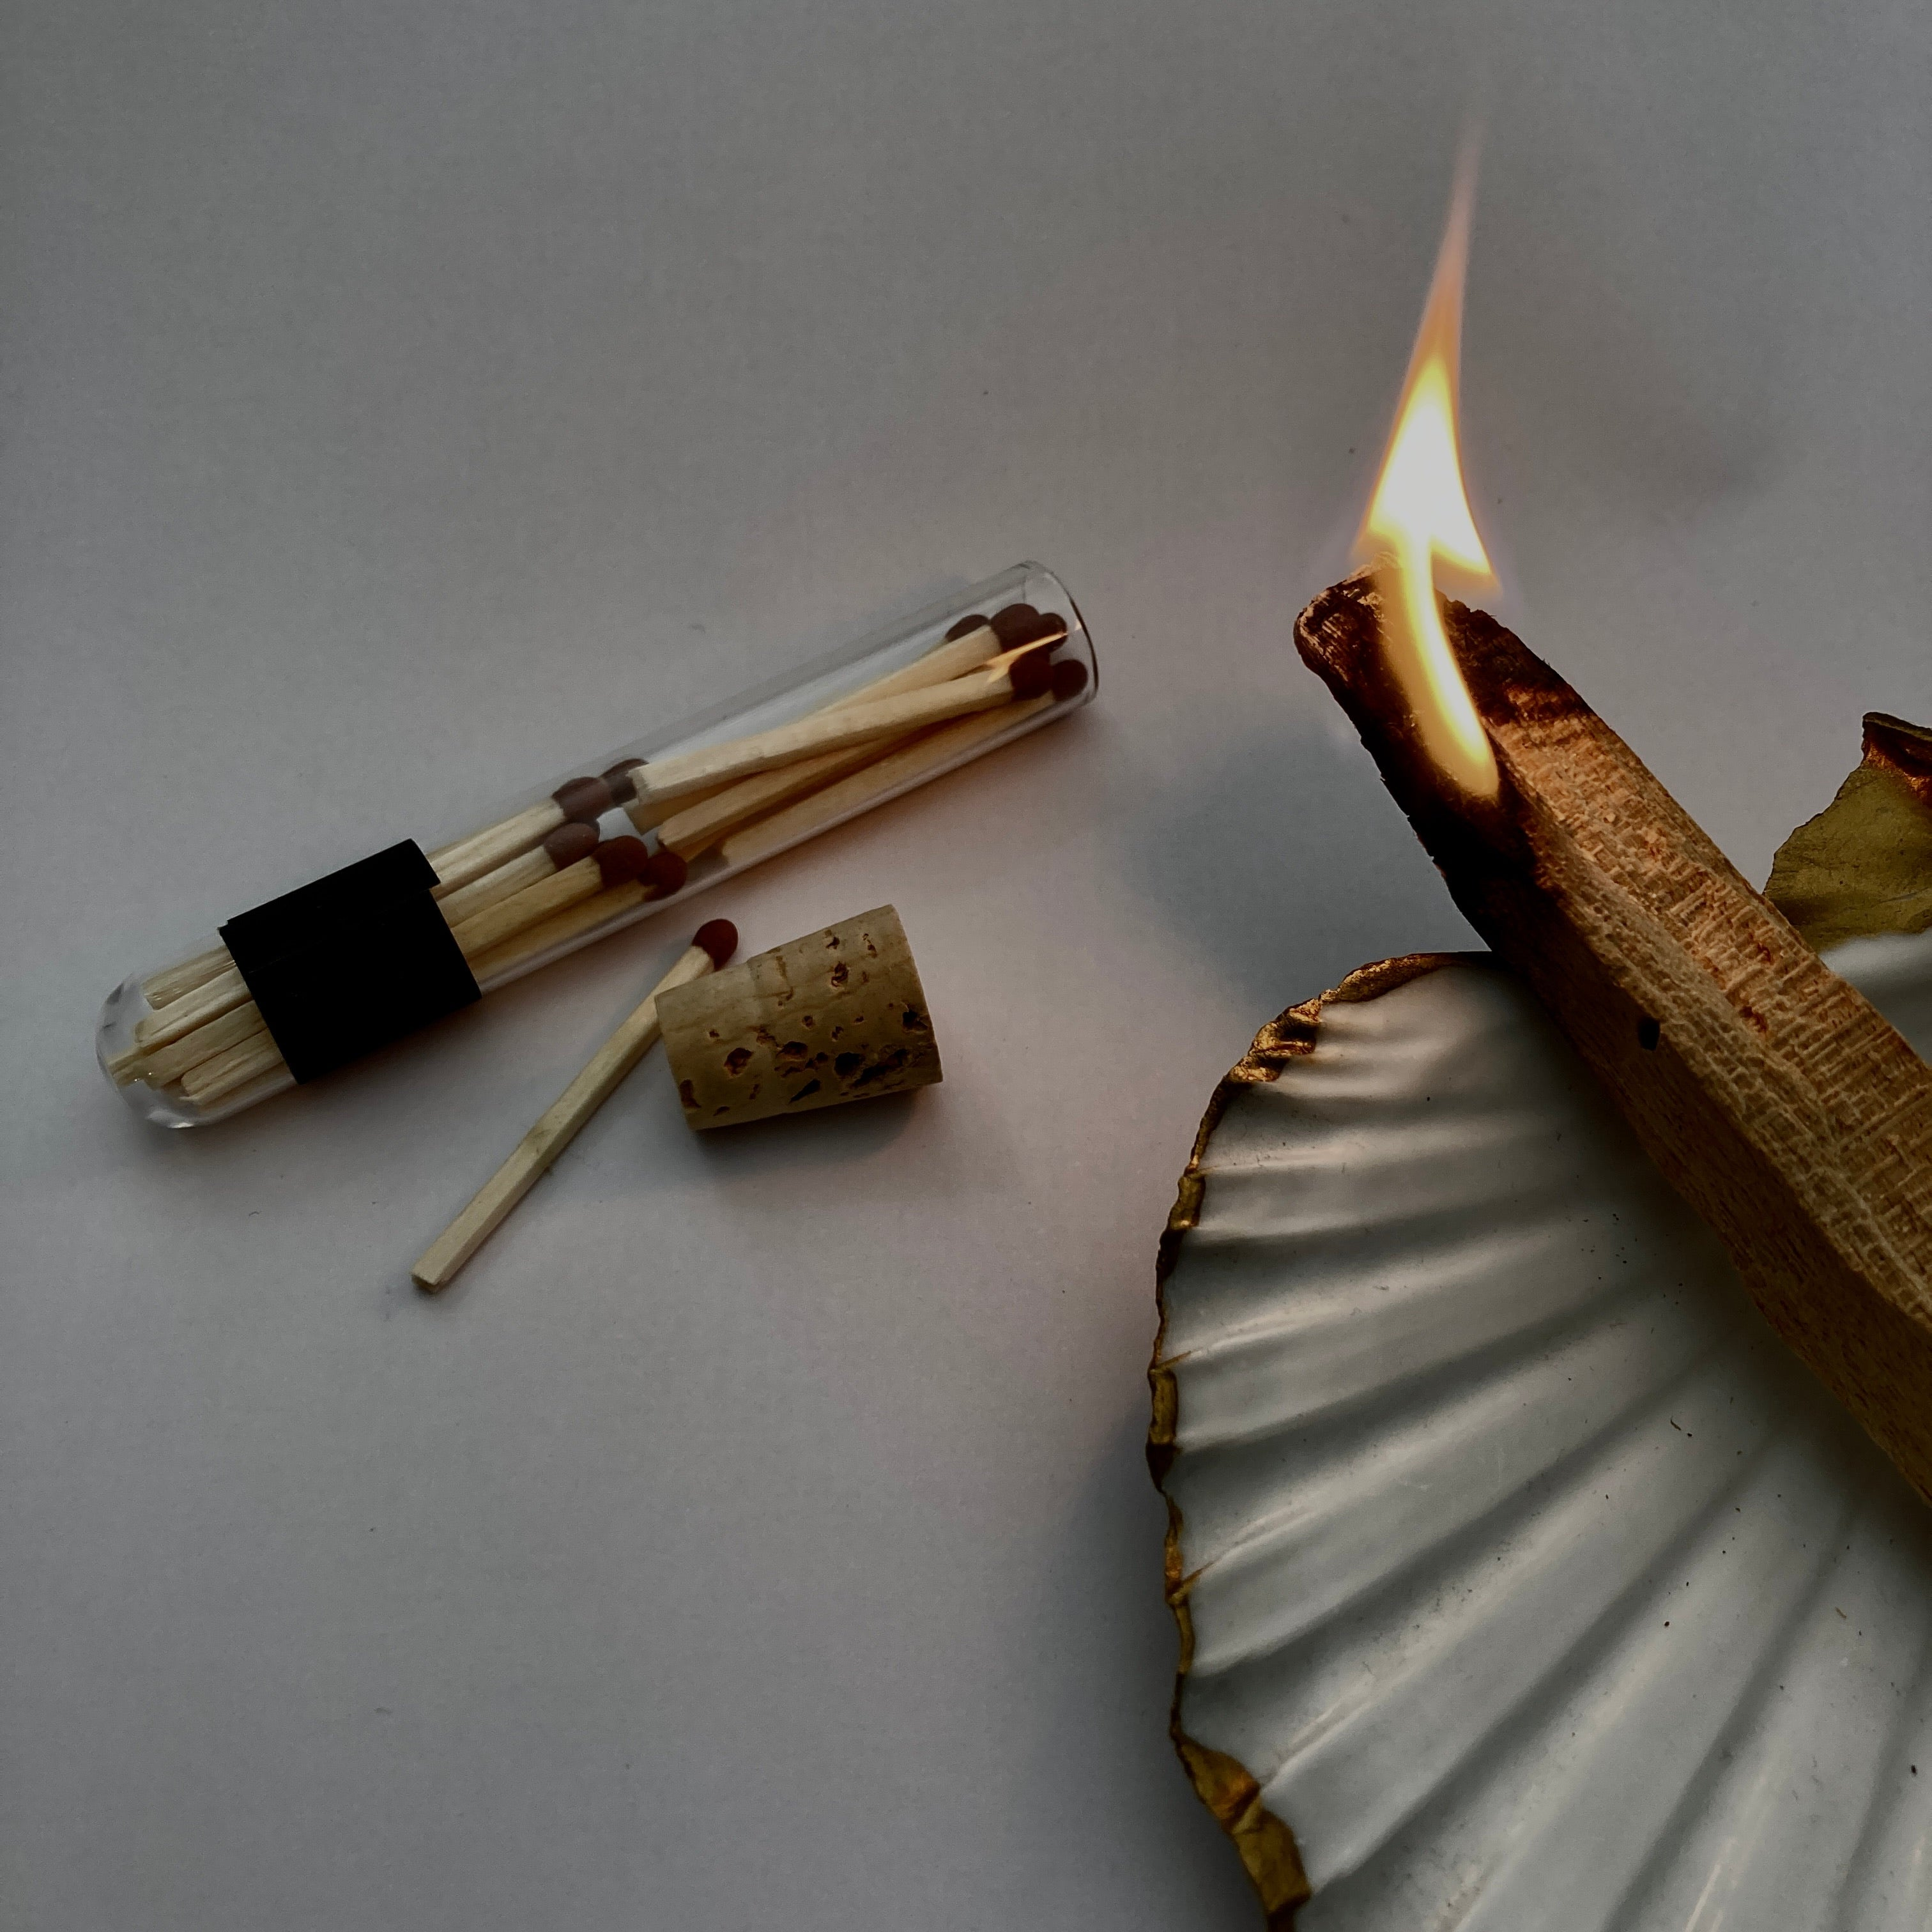 matches in a test tube